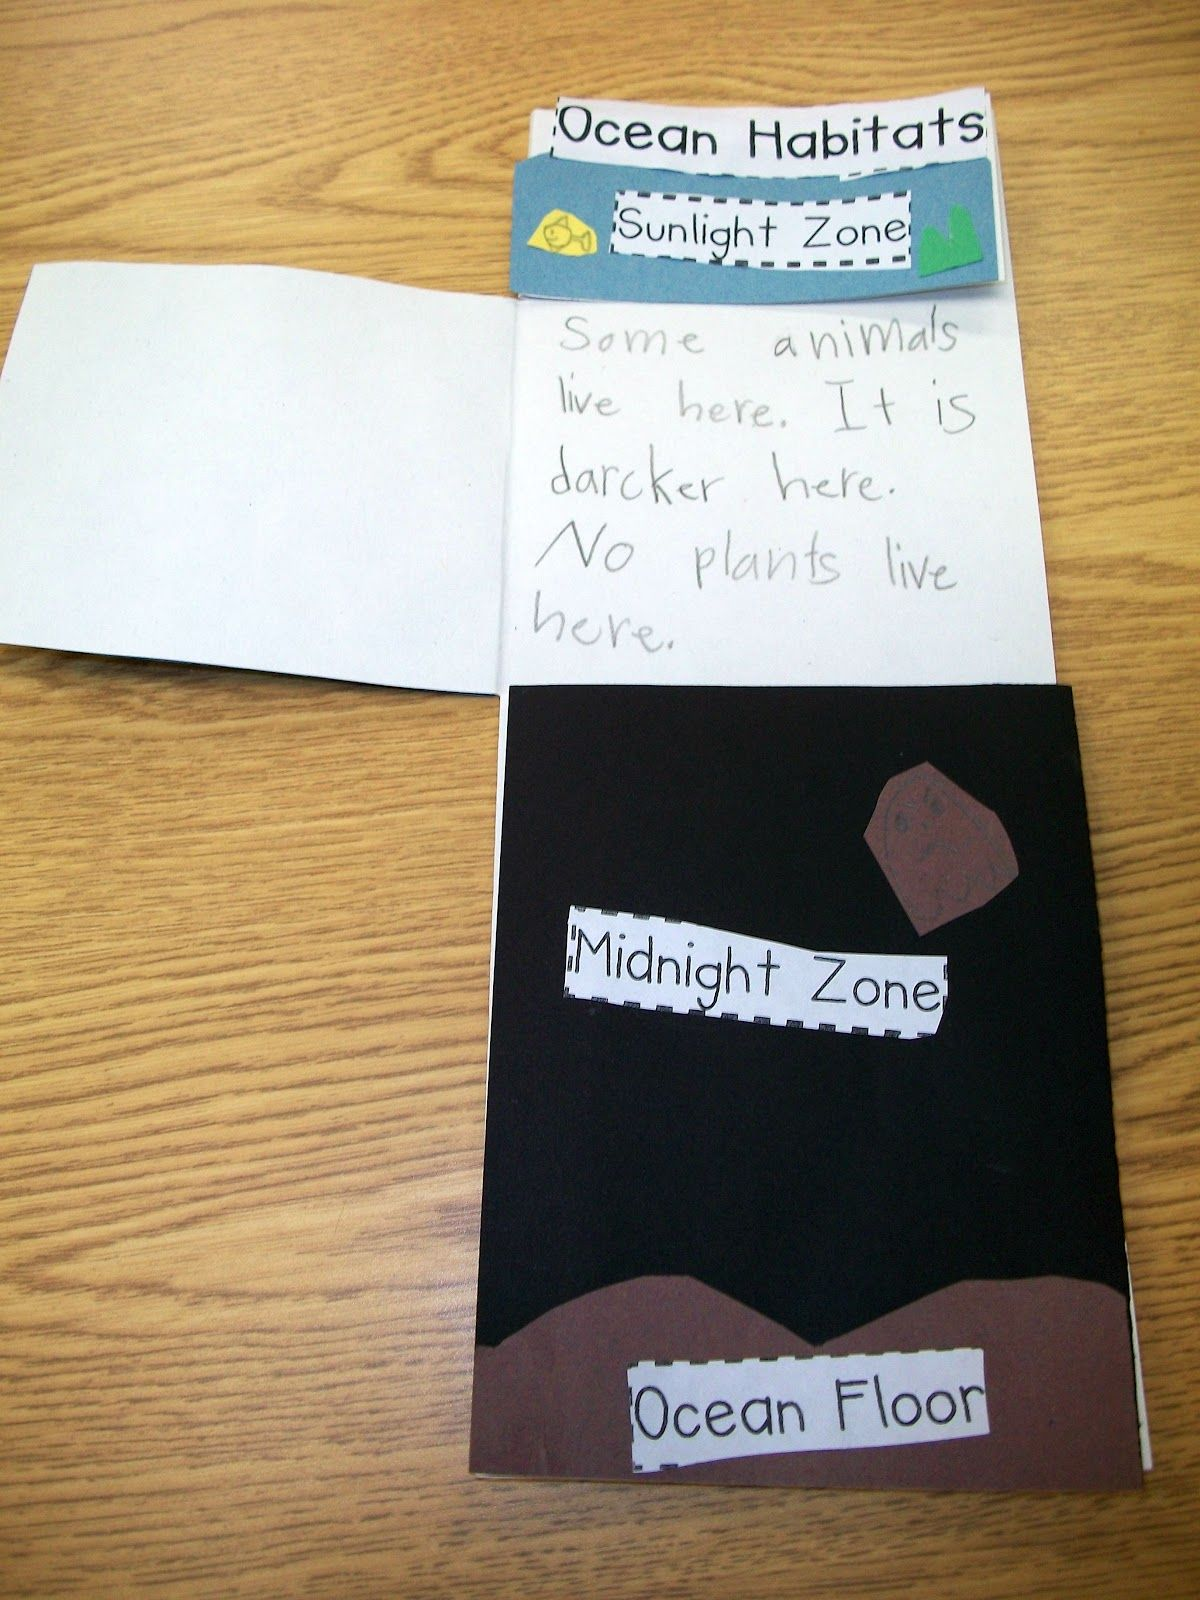 Here S A Nice Foldable Idea On The Zones Of The Ocean